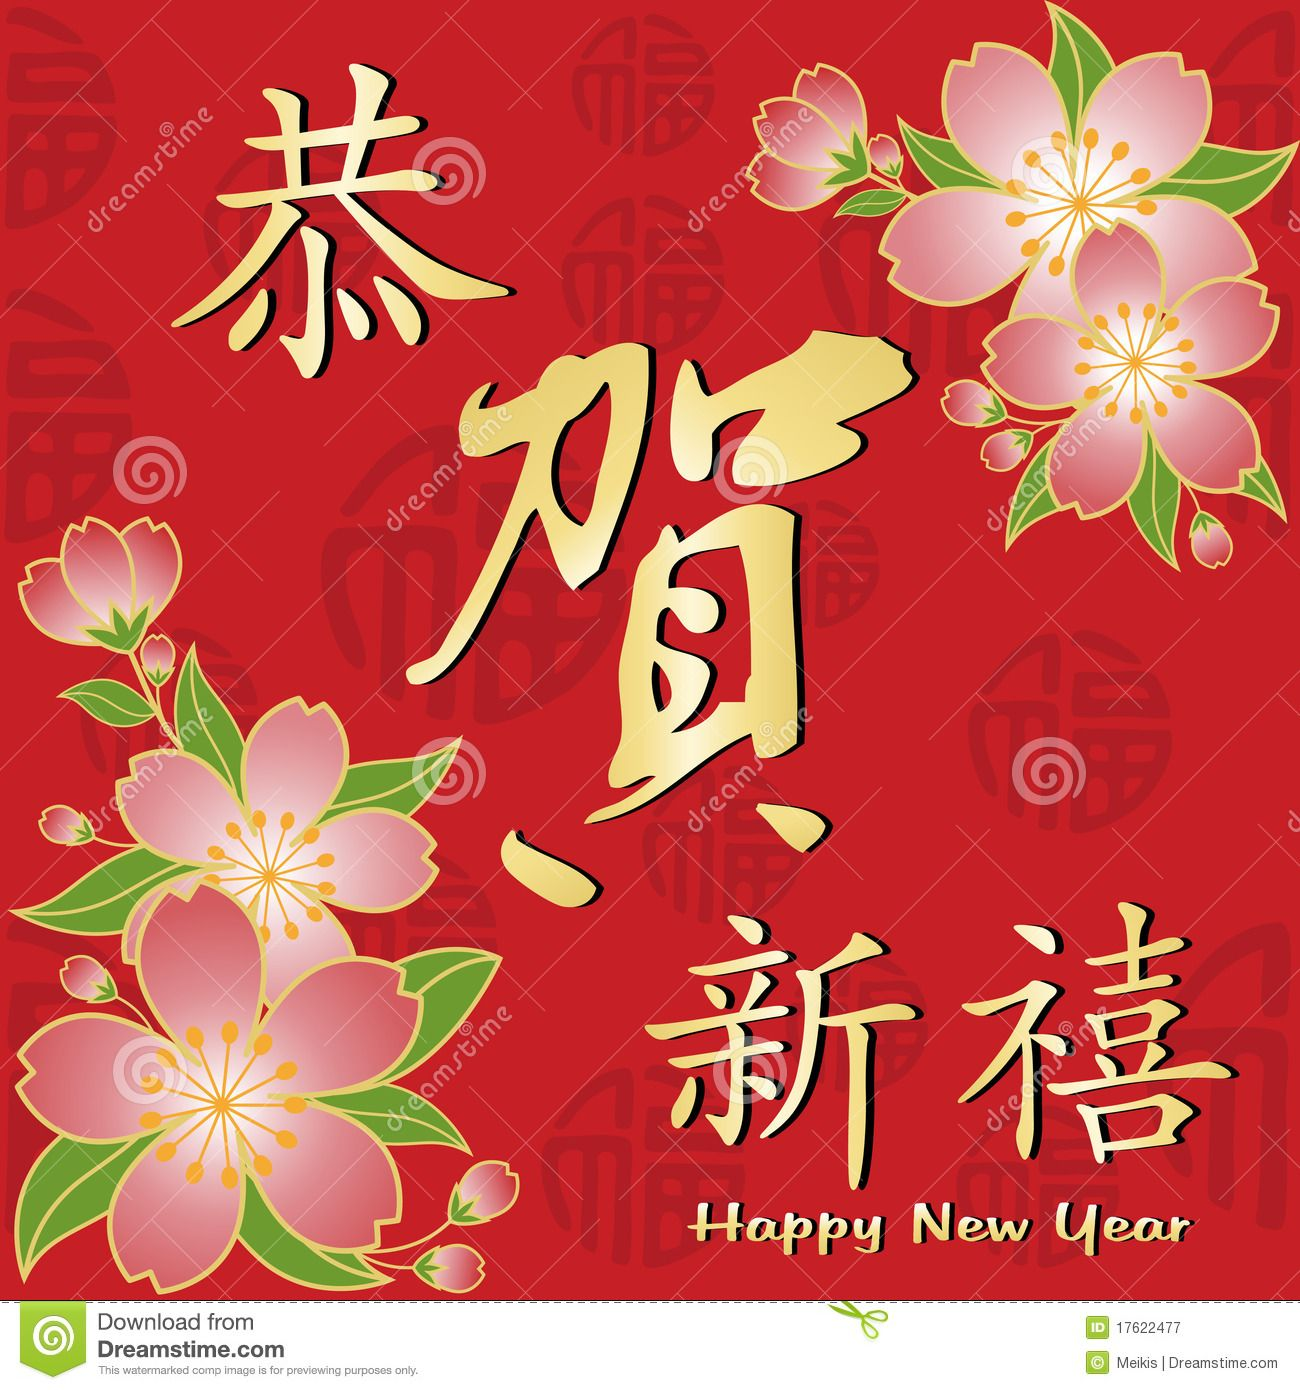 image result for chinese new year handmade cards